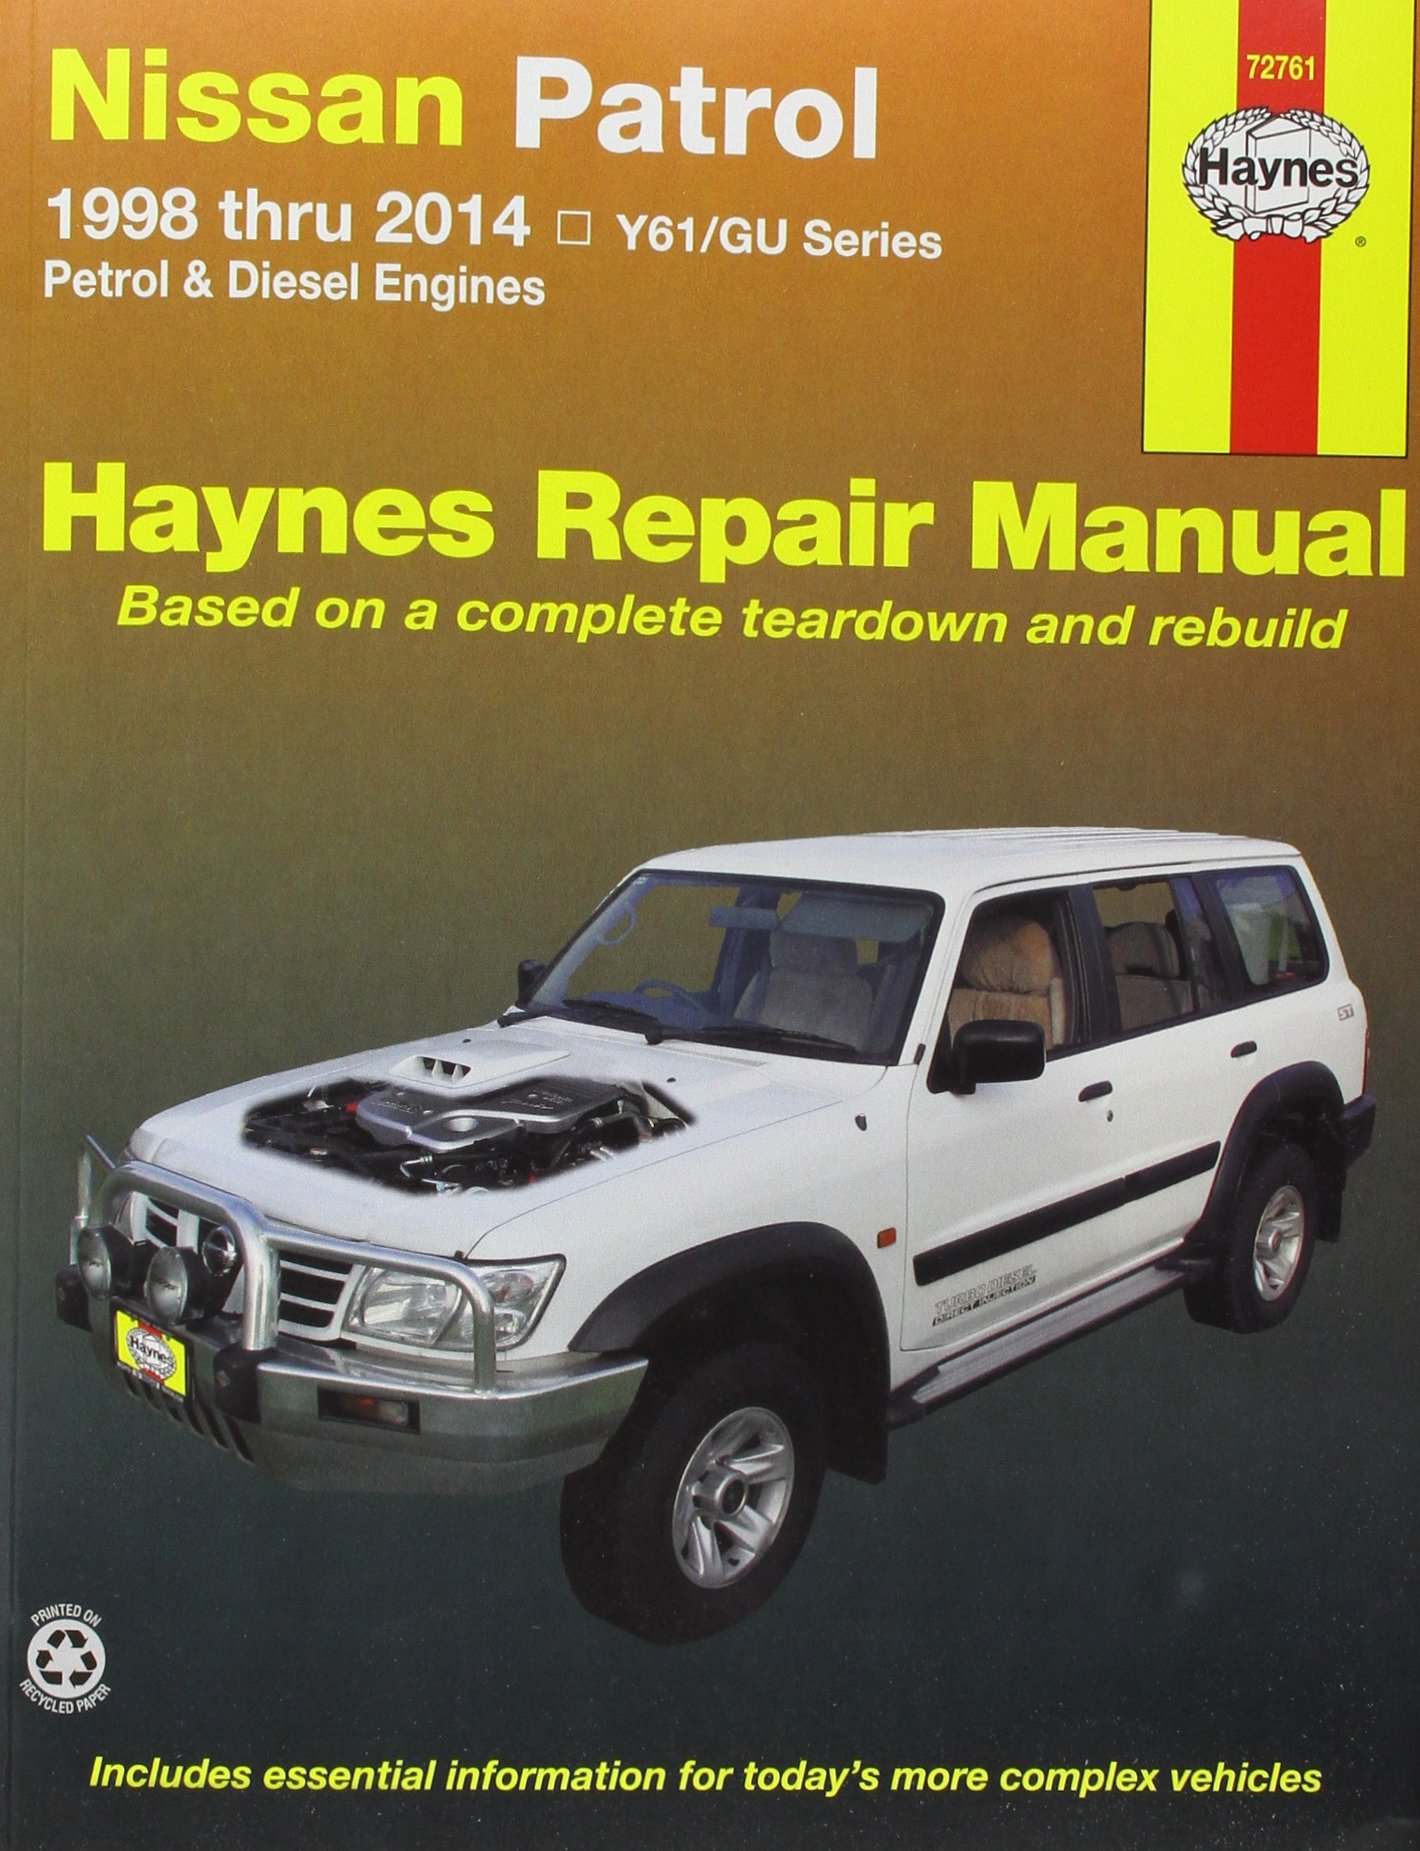 nissan y61 service manual ebook open source user manual u2022 rh dramatic varieties com nissan patrol y60 manual pdf nissan patrol y60 workshop manual